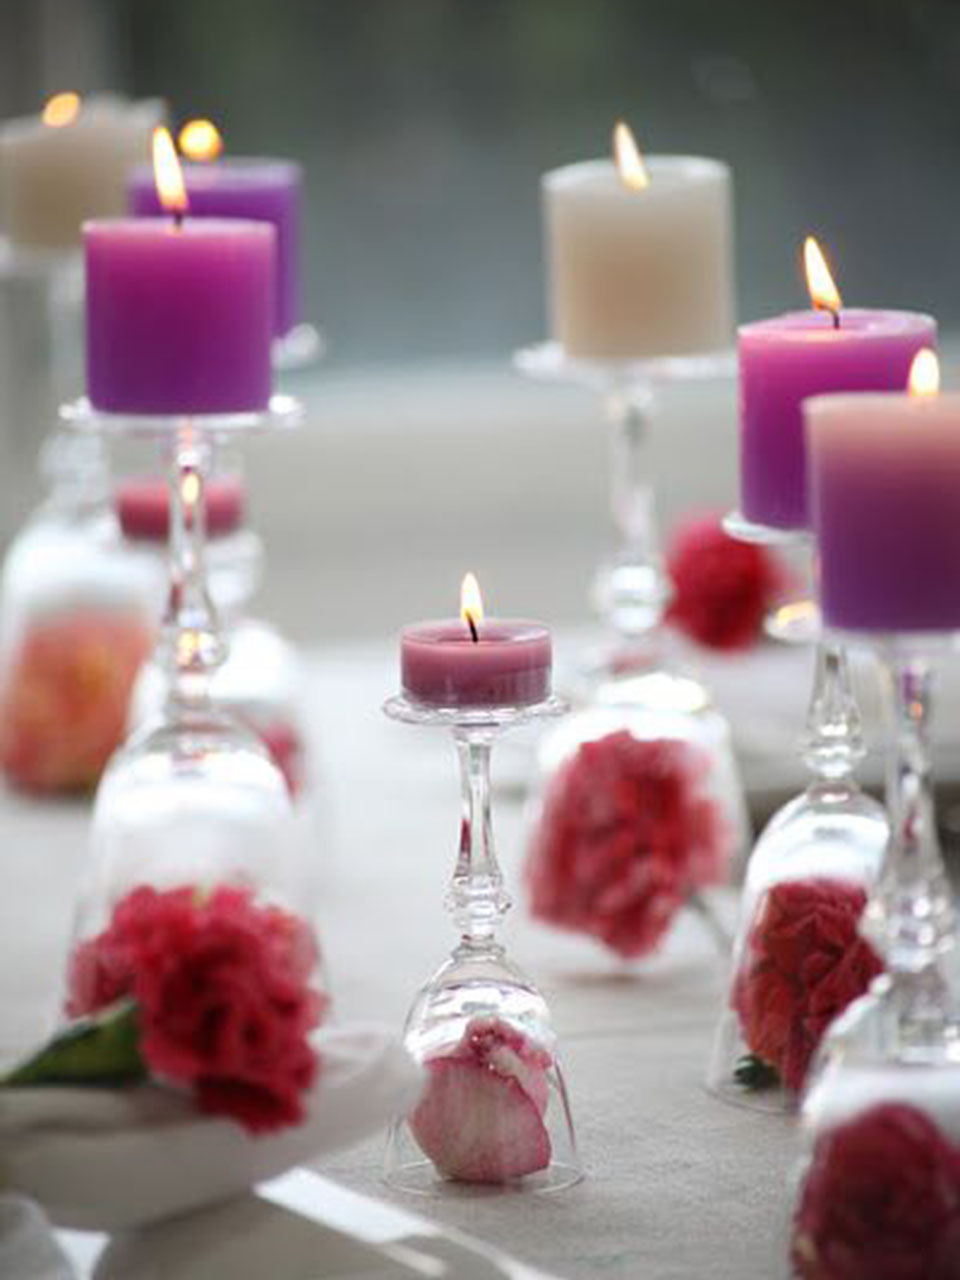 Las ideas m s incre bles para decorar con velas for Decoracion del hogar con velas